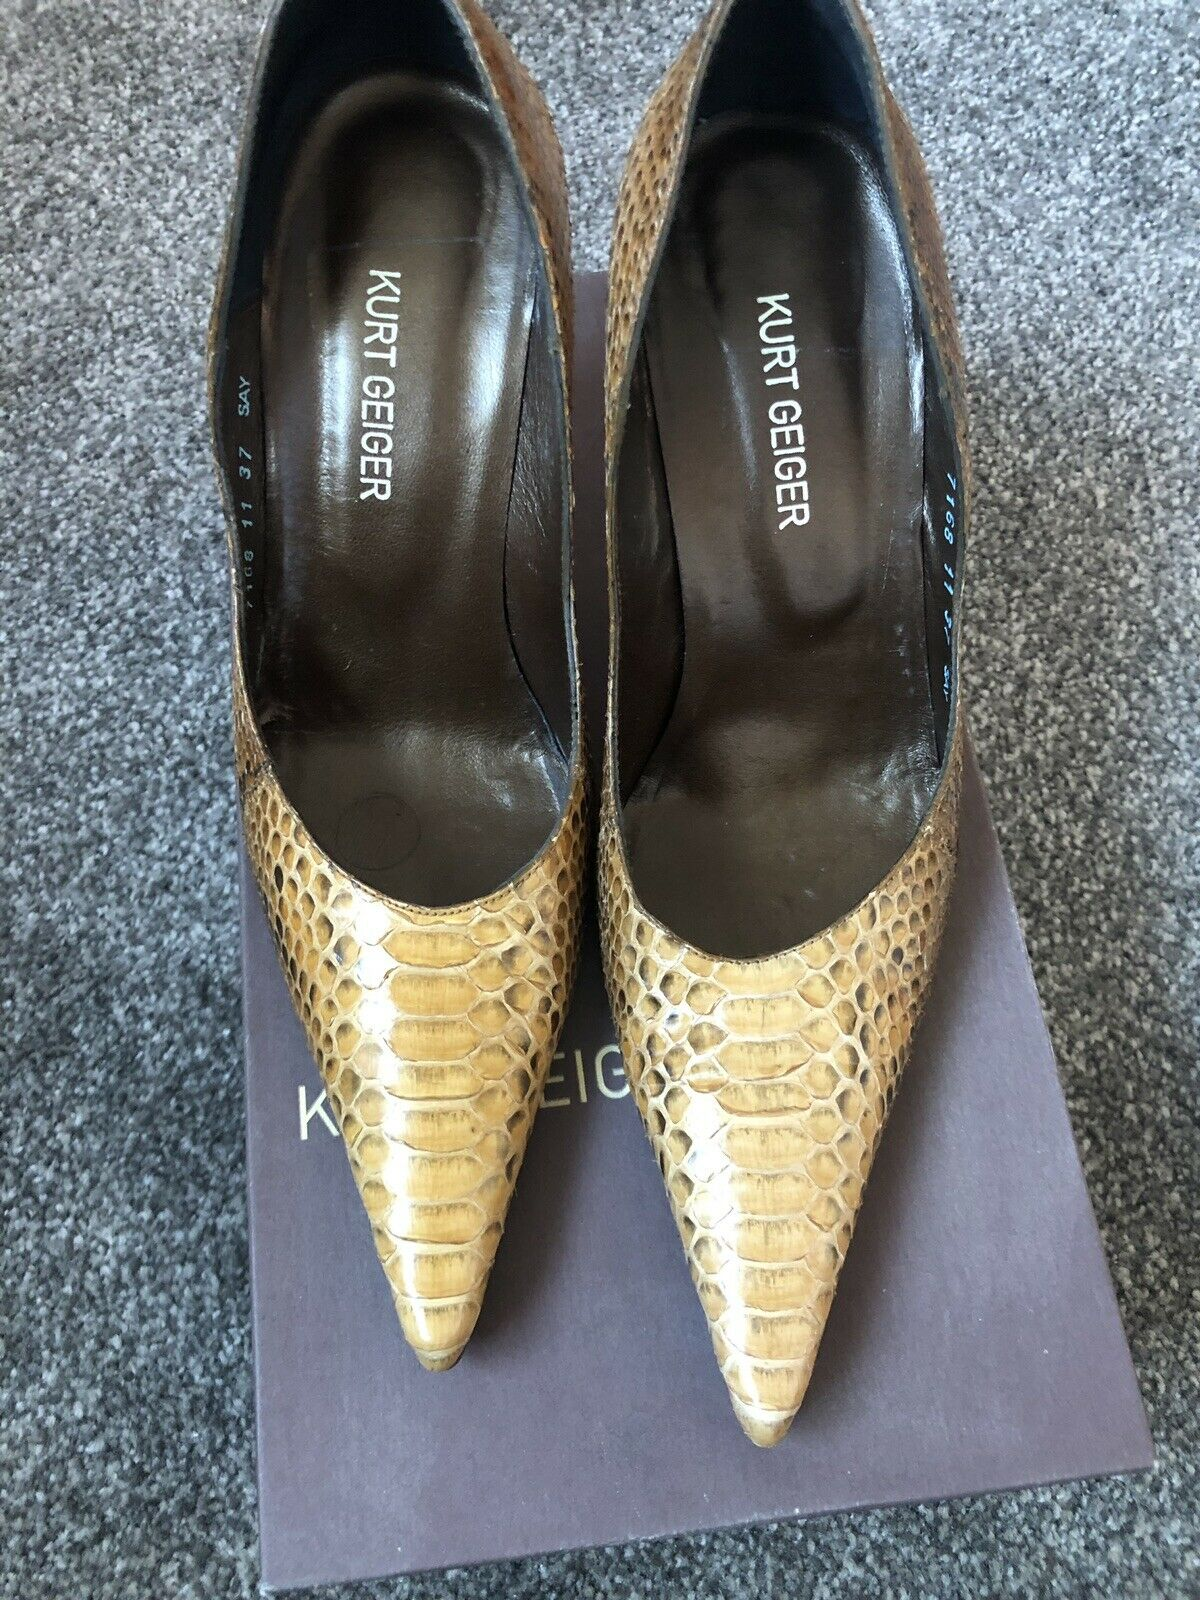 Kurt Geiger Snake Skin Court Heels With Leather Leather Leather Sole Größe 4 Brand New In Box 049cab